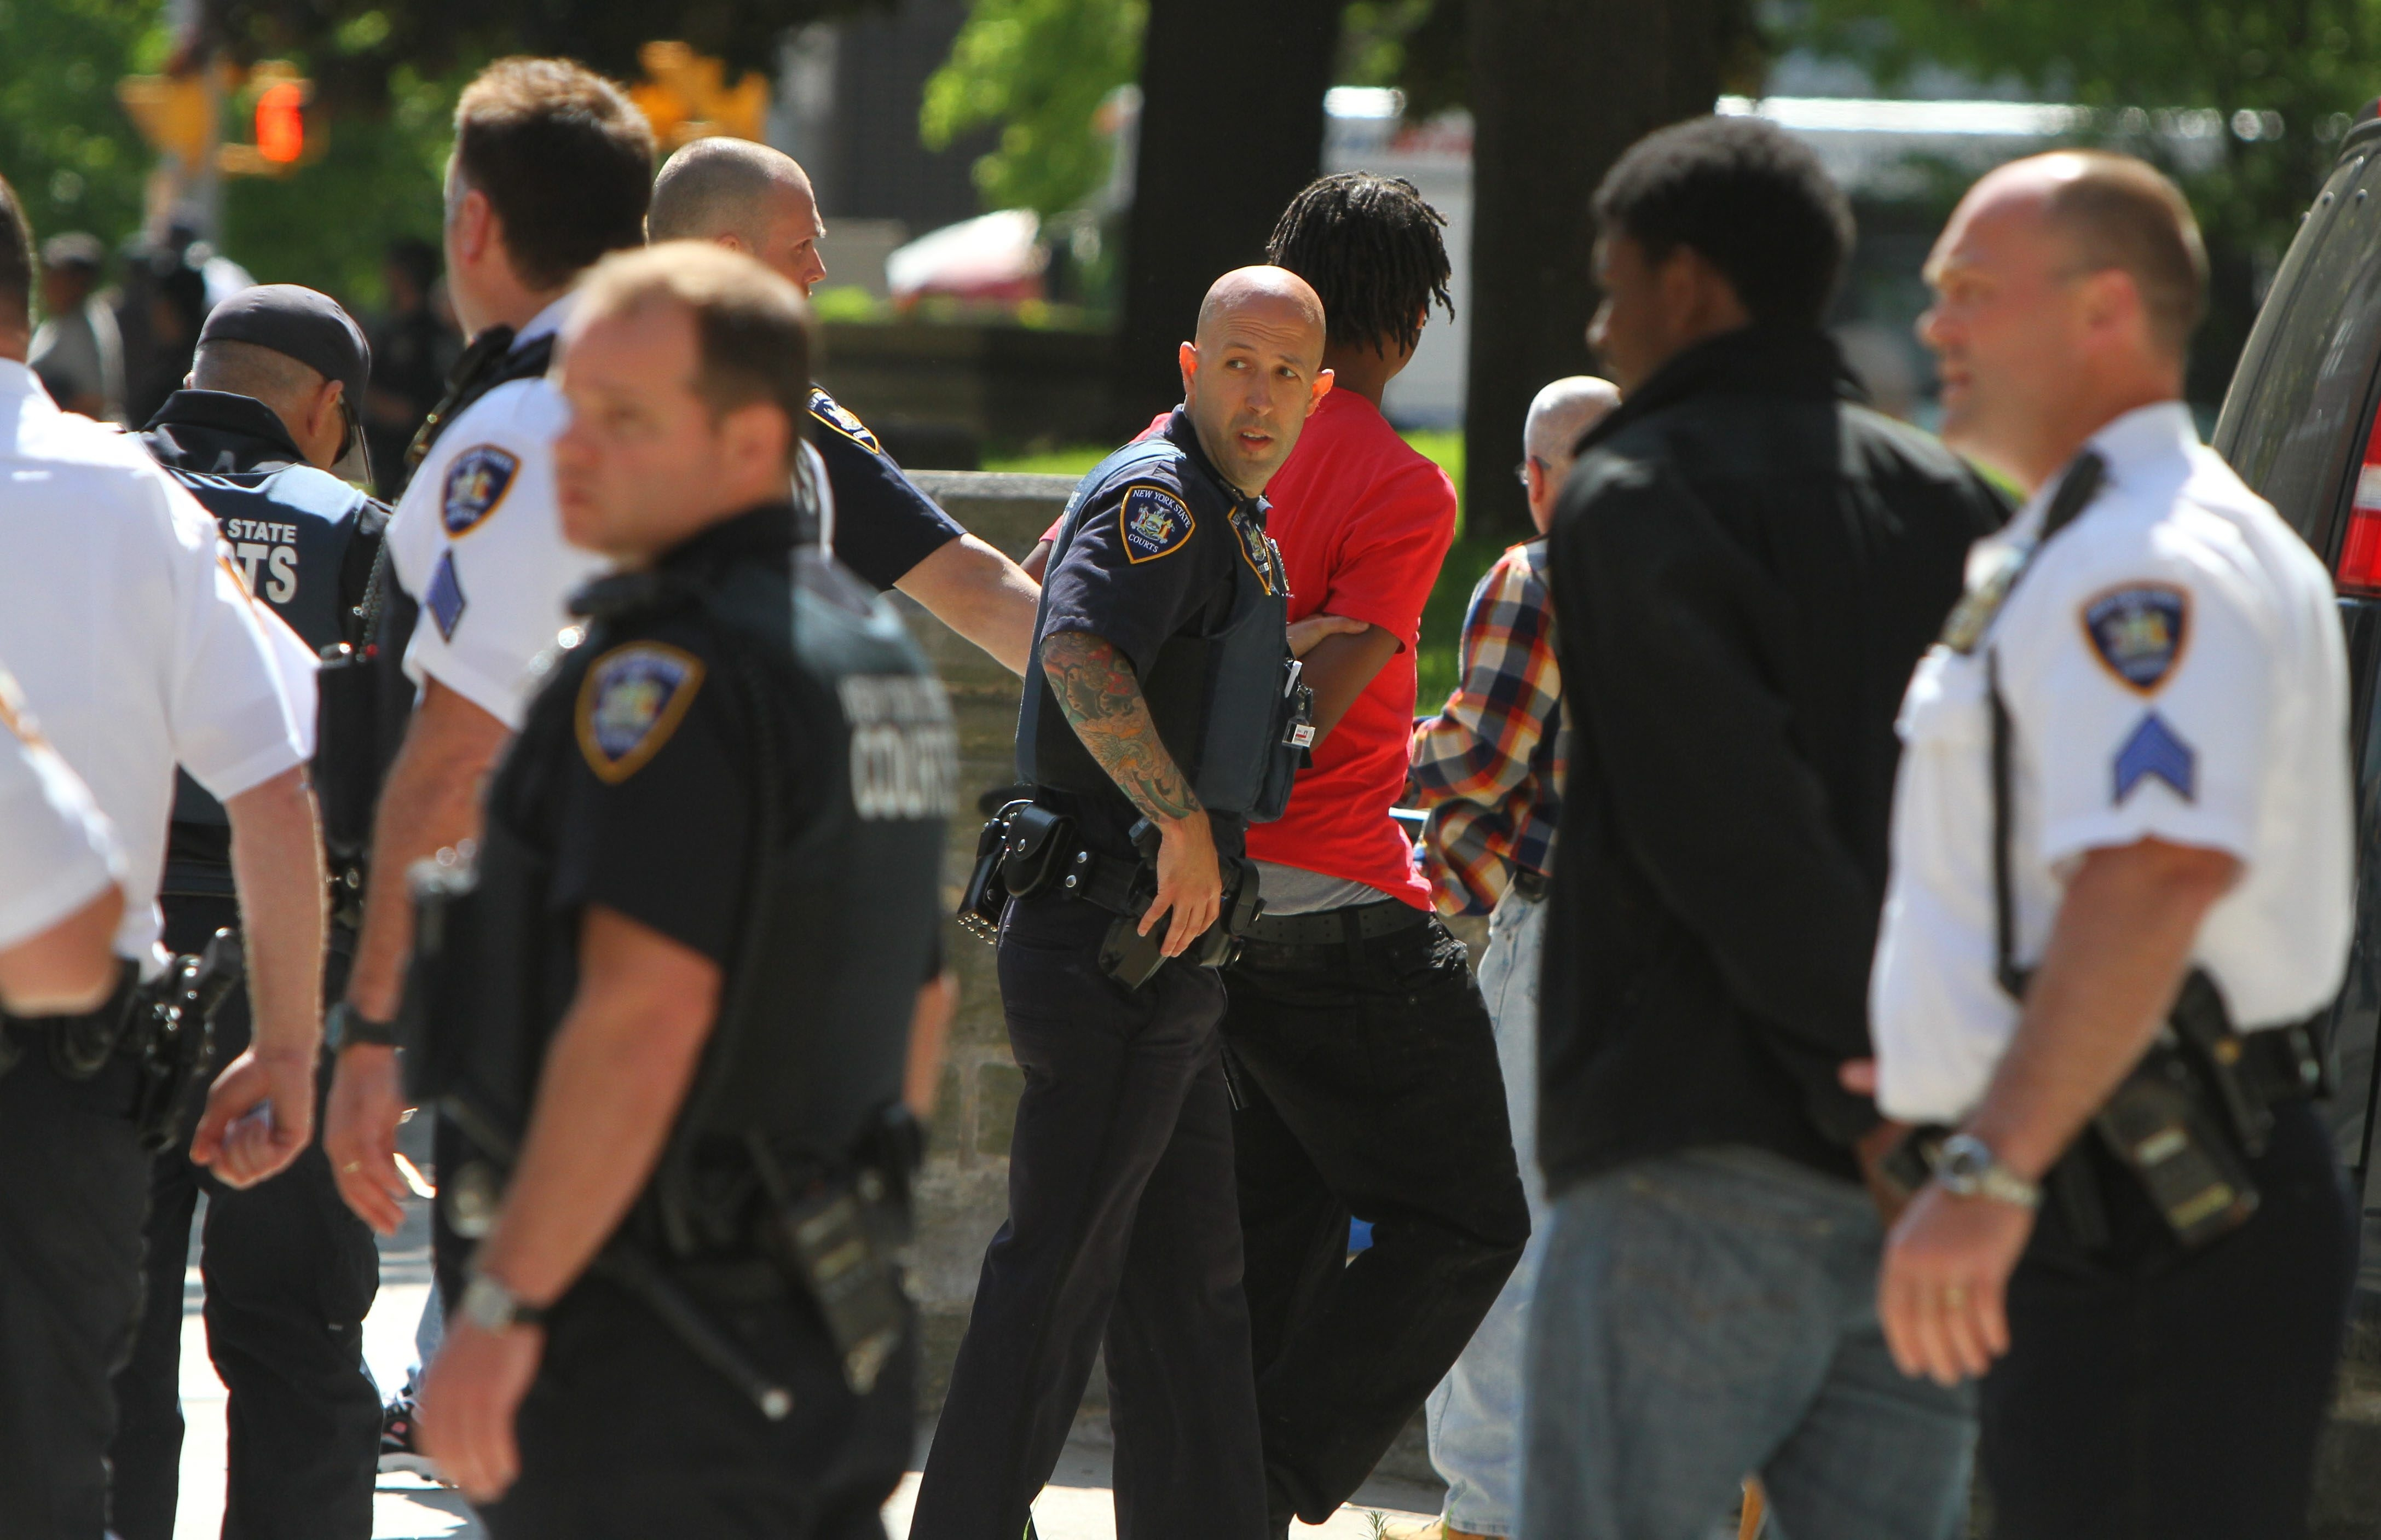 Buffalo police have several people in handcuffs outside Erie County Courthouse Wednesday after a fight broke out between  friends and family of two teens who had just received life terms for the murder of a Buffalo cabbie. Ten people were arrested outside the court.